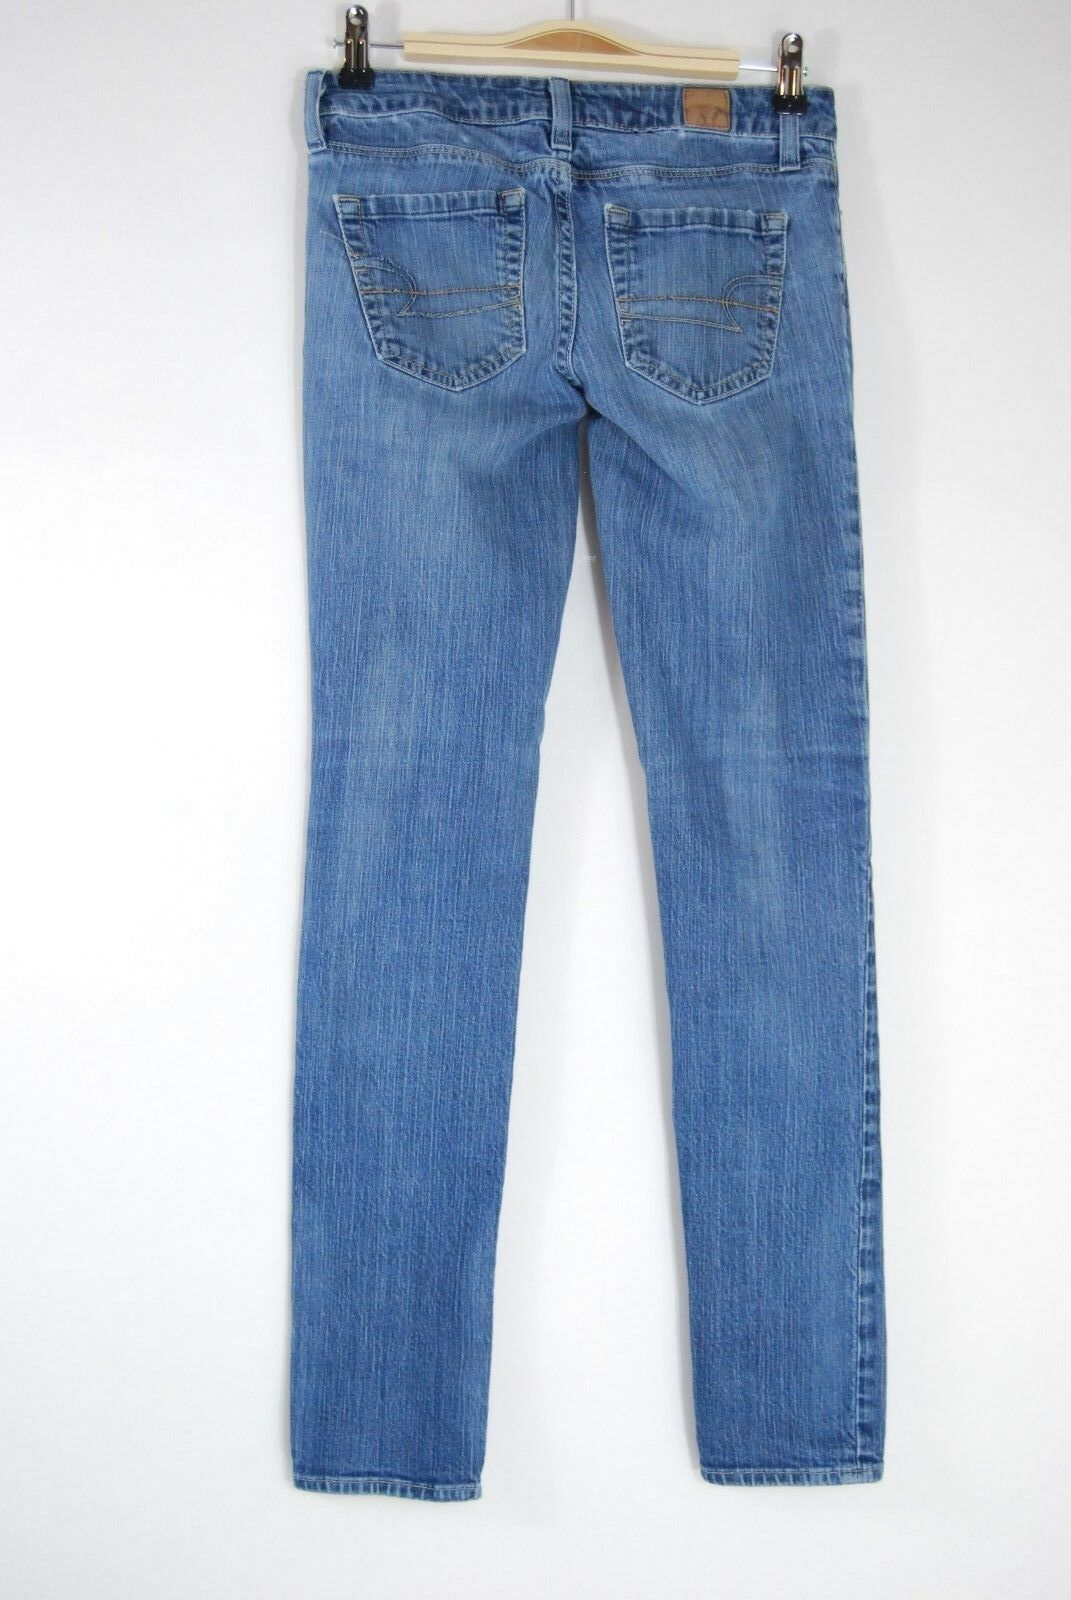 Women's American Eagle Skinny Jeans - Size 0 image 3